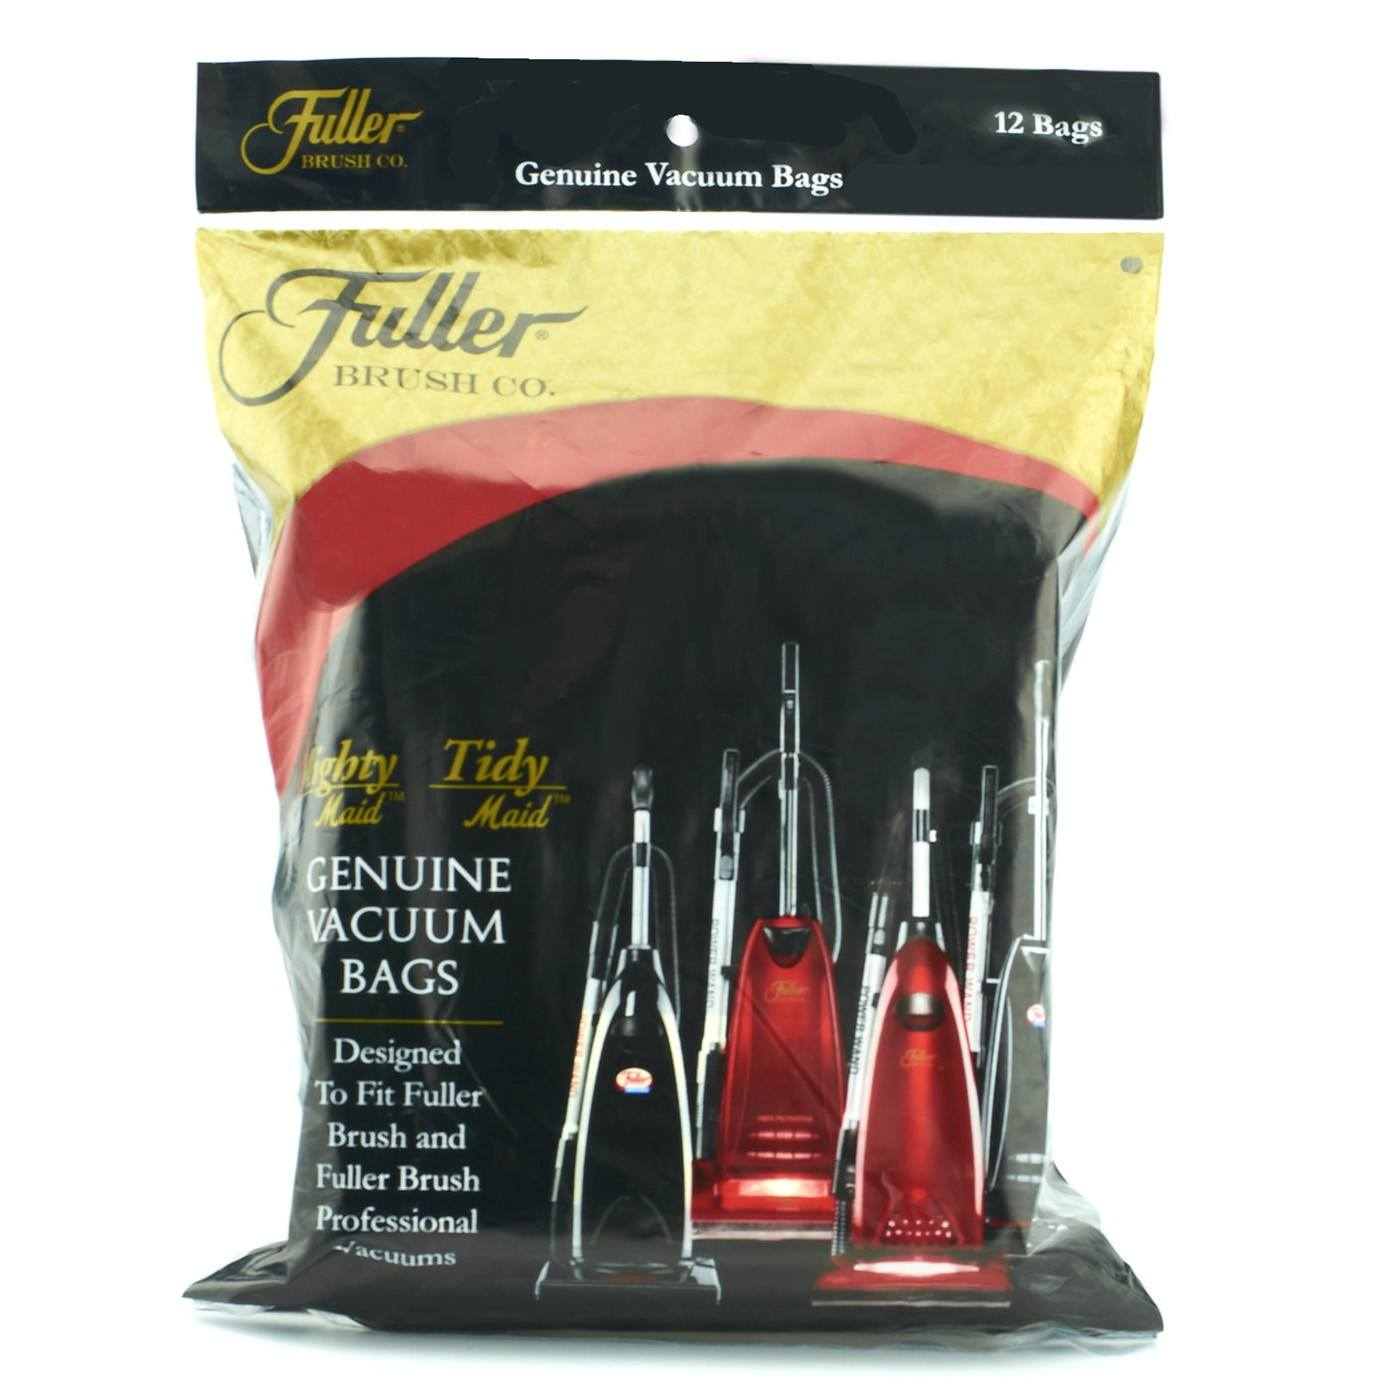 Fuller Brush Paper Vacuum Bags for Uprights